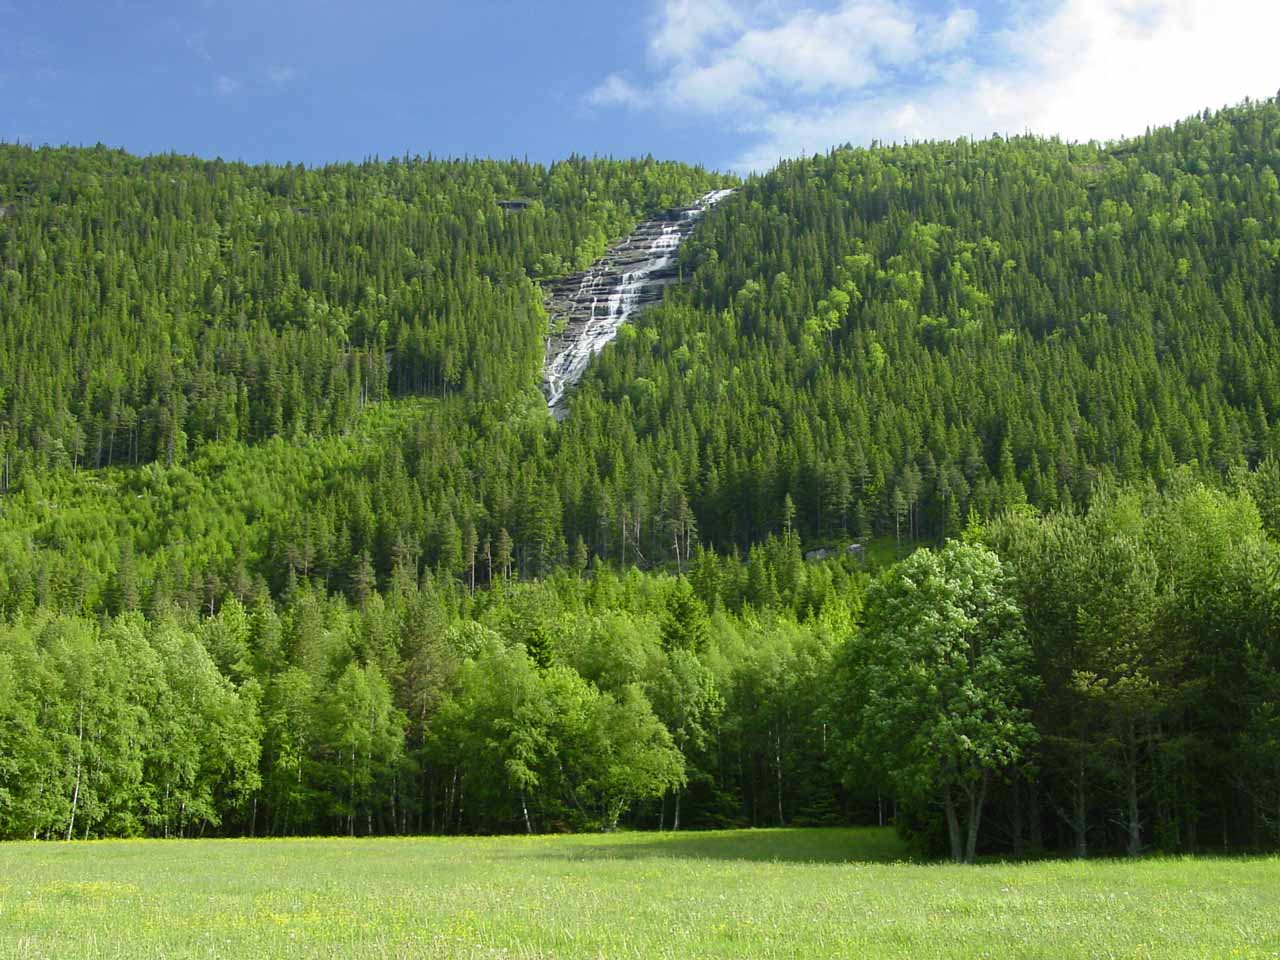 A more direct view of Kallefossen as we took a side road to try to get a closer look